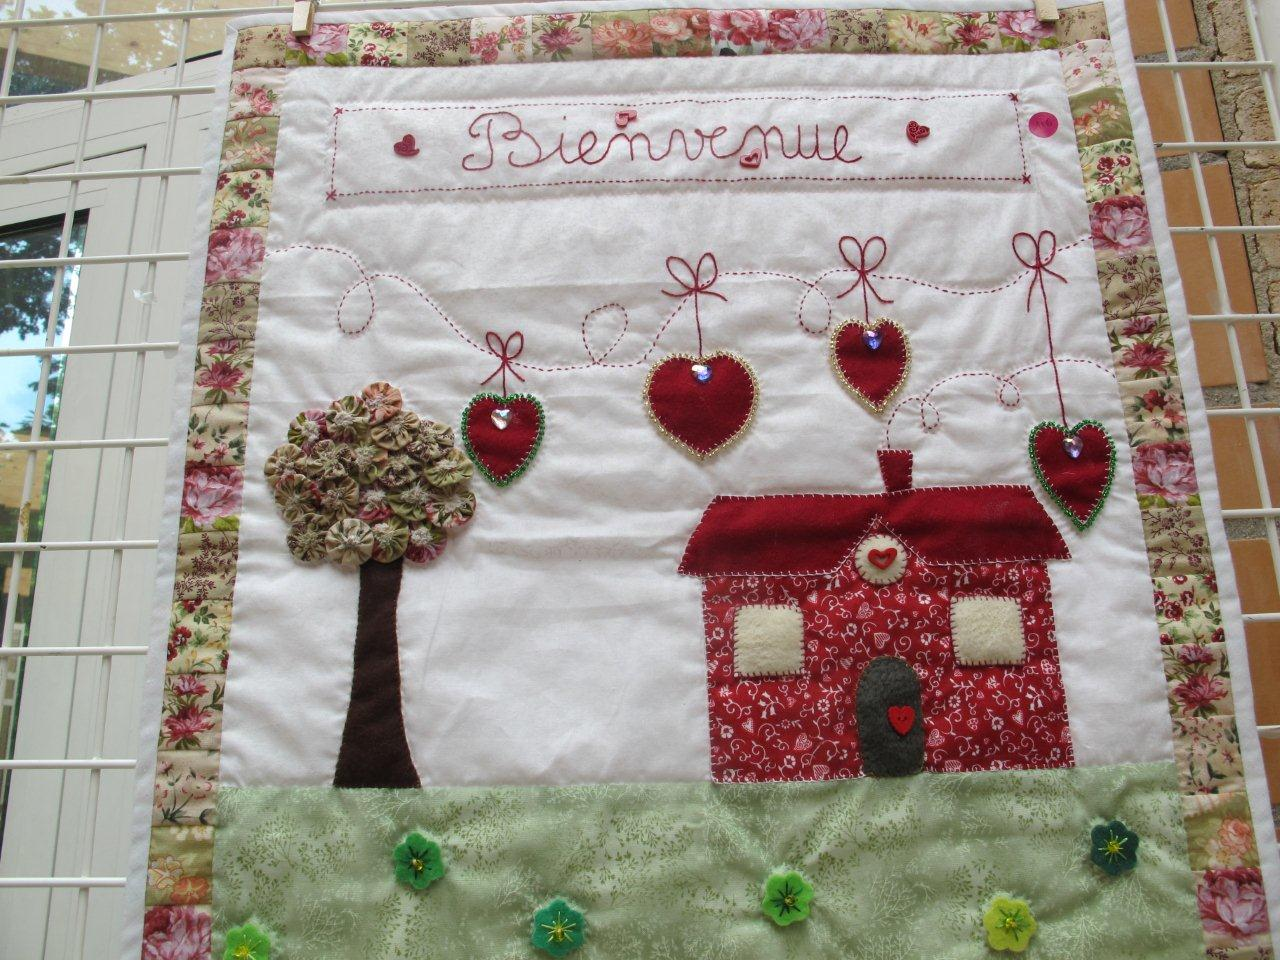 Expo patch 10